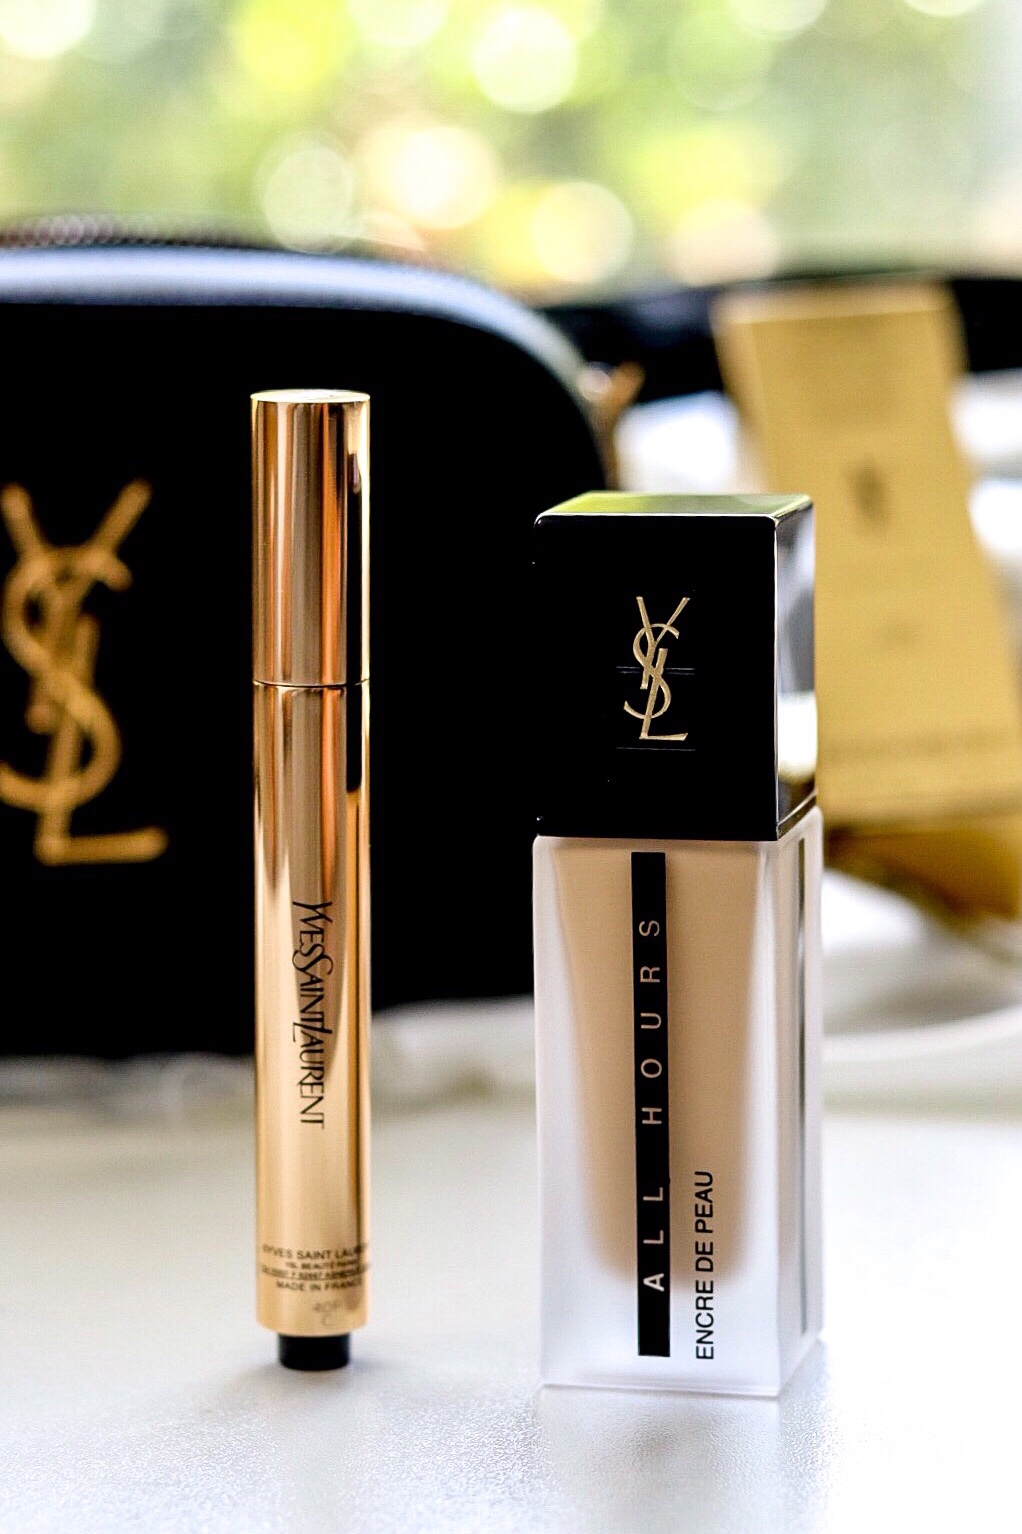 YSL, YSL Foundation, YSL Makeup, foundation review, makeup review, review, Yves Saint Lauren, Makeup